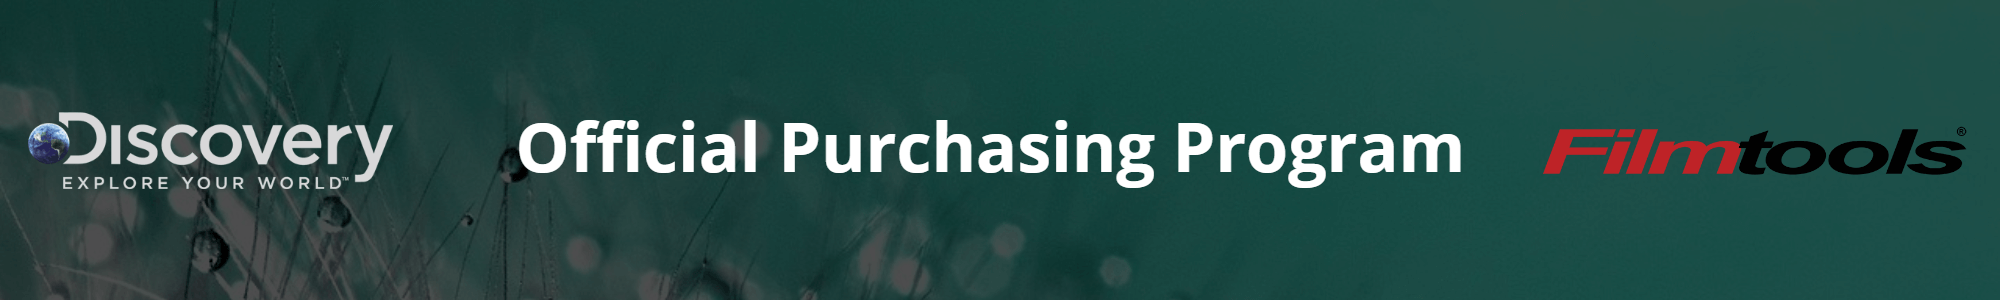 Official Purchasing Program